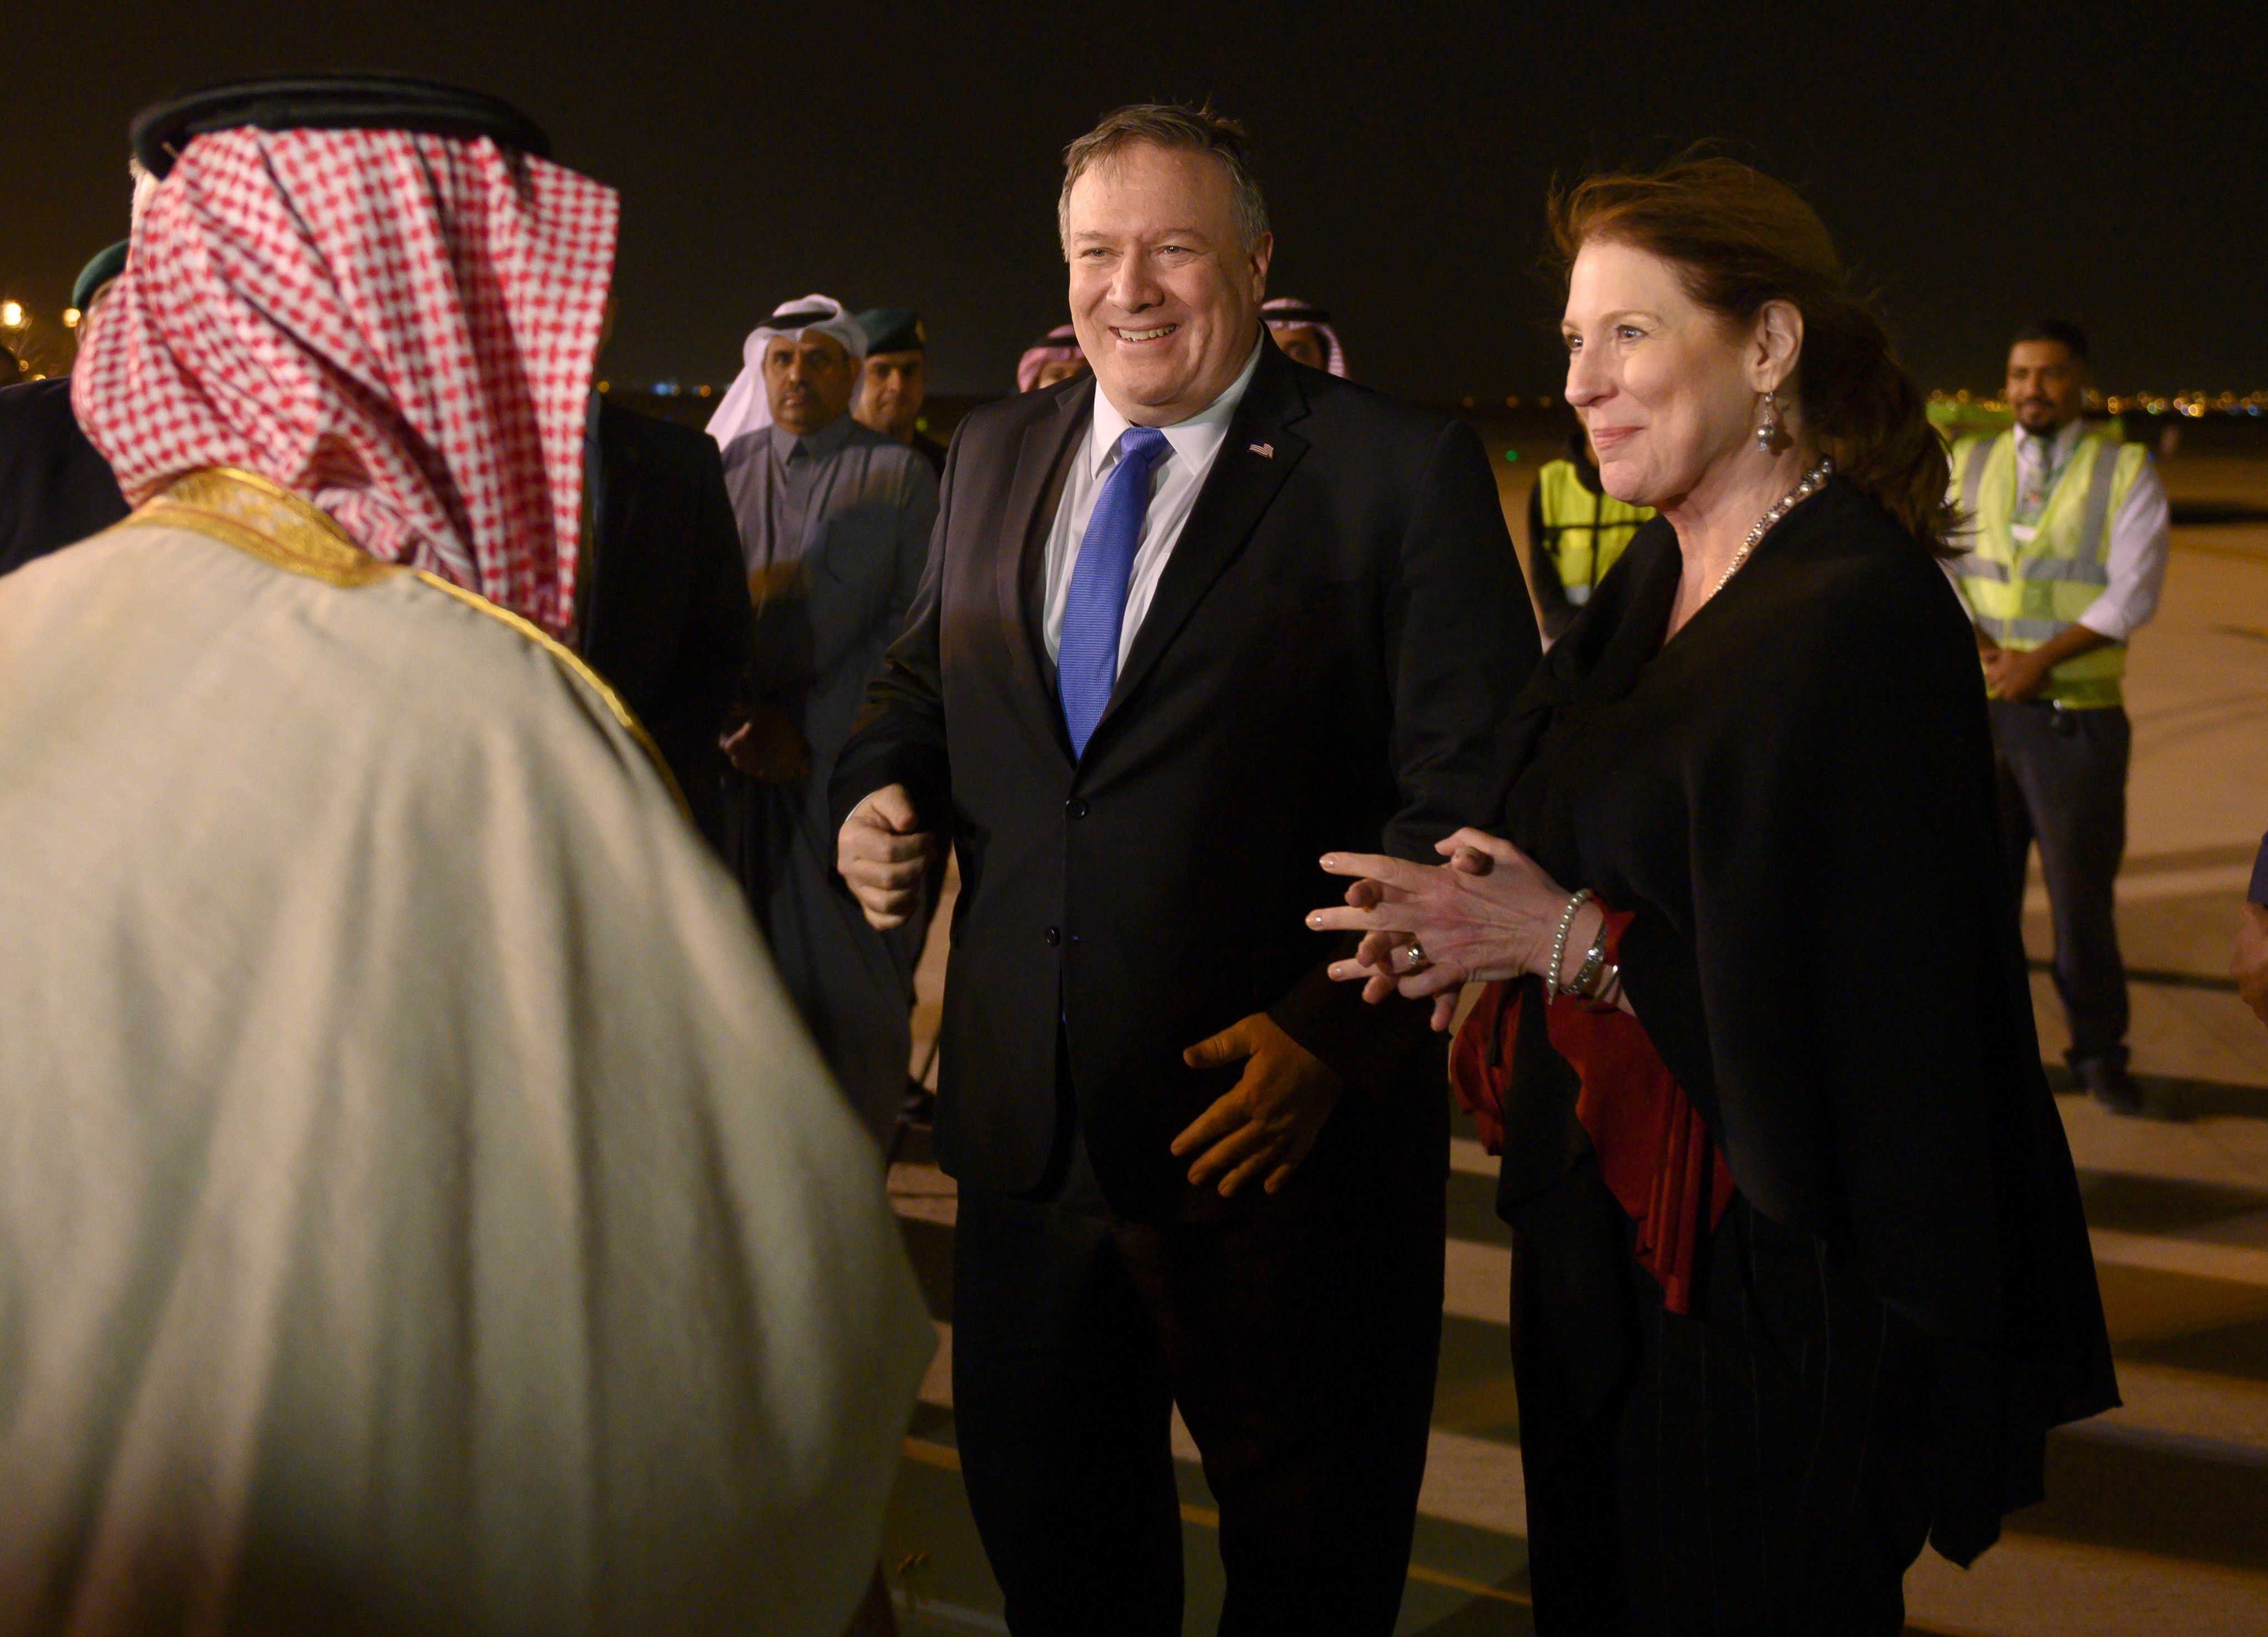 US Secretary of State Mike Pompeo and his wife Susan are greeted by Saudi's Minister of State for Foreign Affairs Adel al-Jubeir in Riyadh on Sunday, January 13, 2019, during his Middle East tour. (Andrew Caballero-Reynolds/Pool Photo via AP)